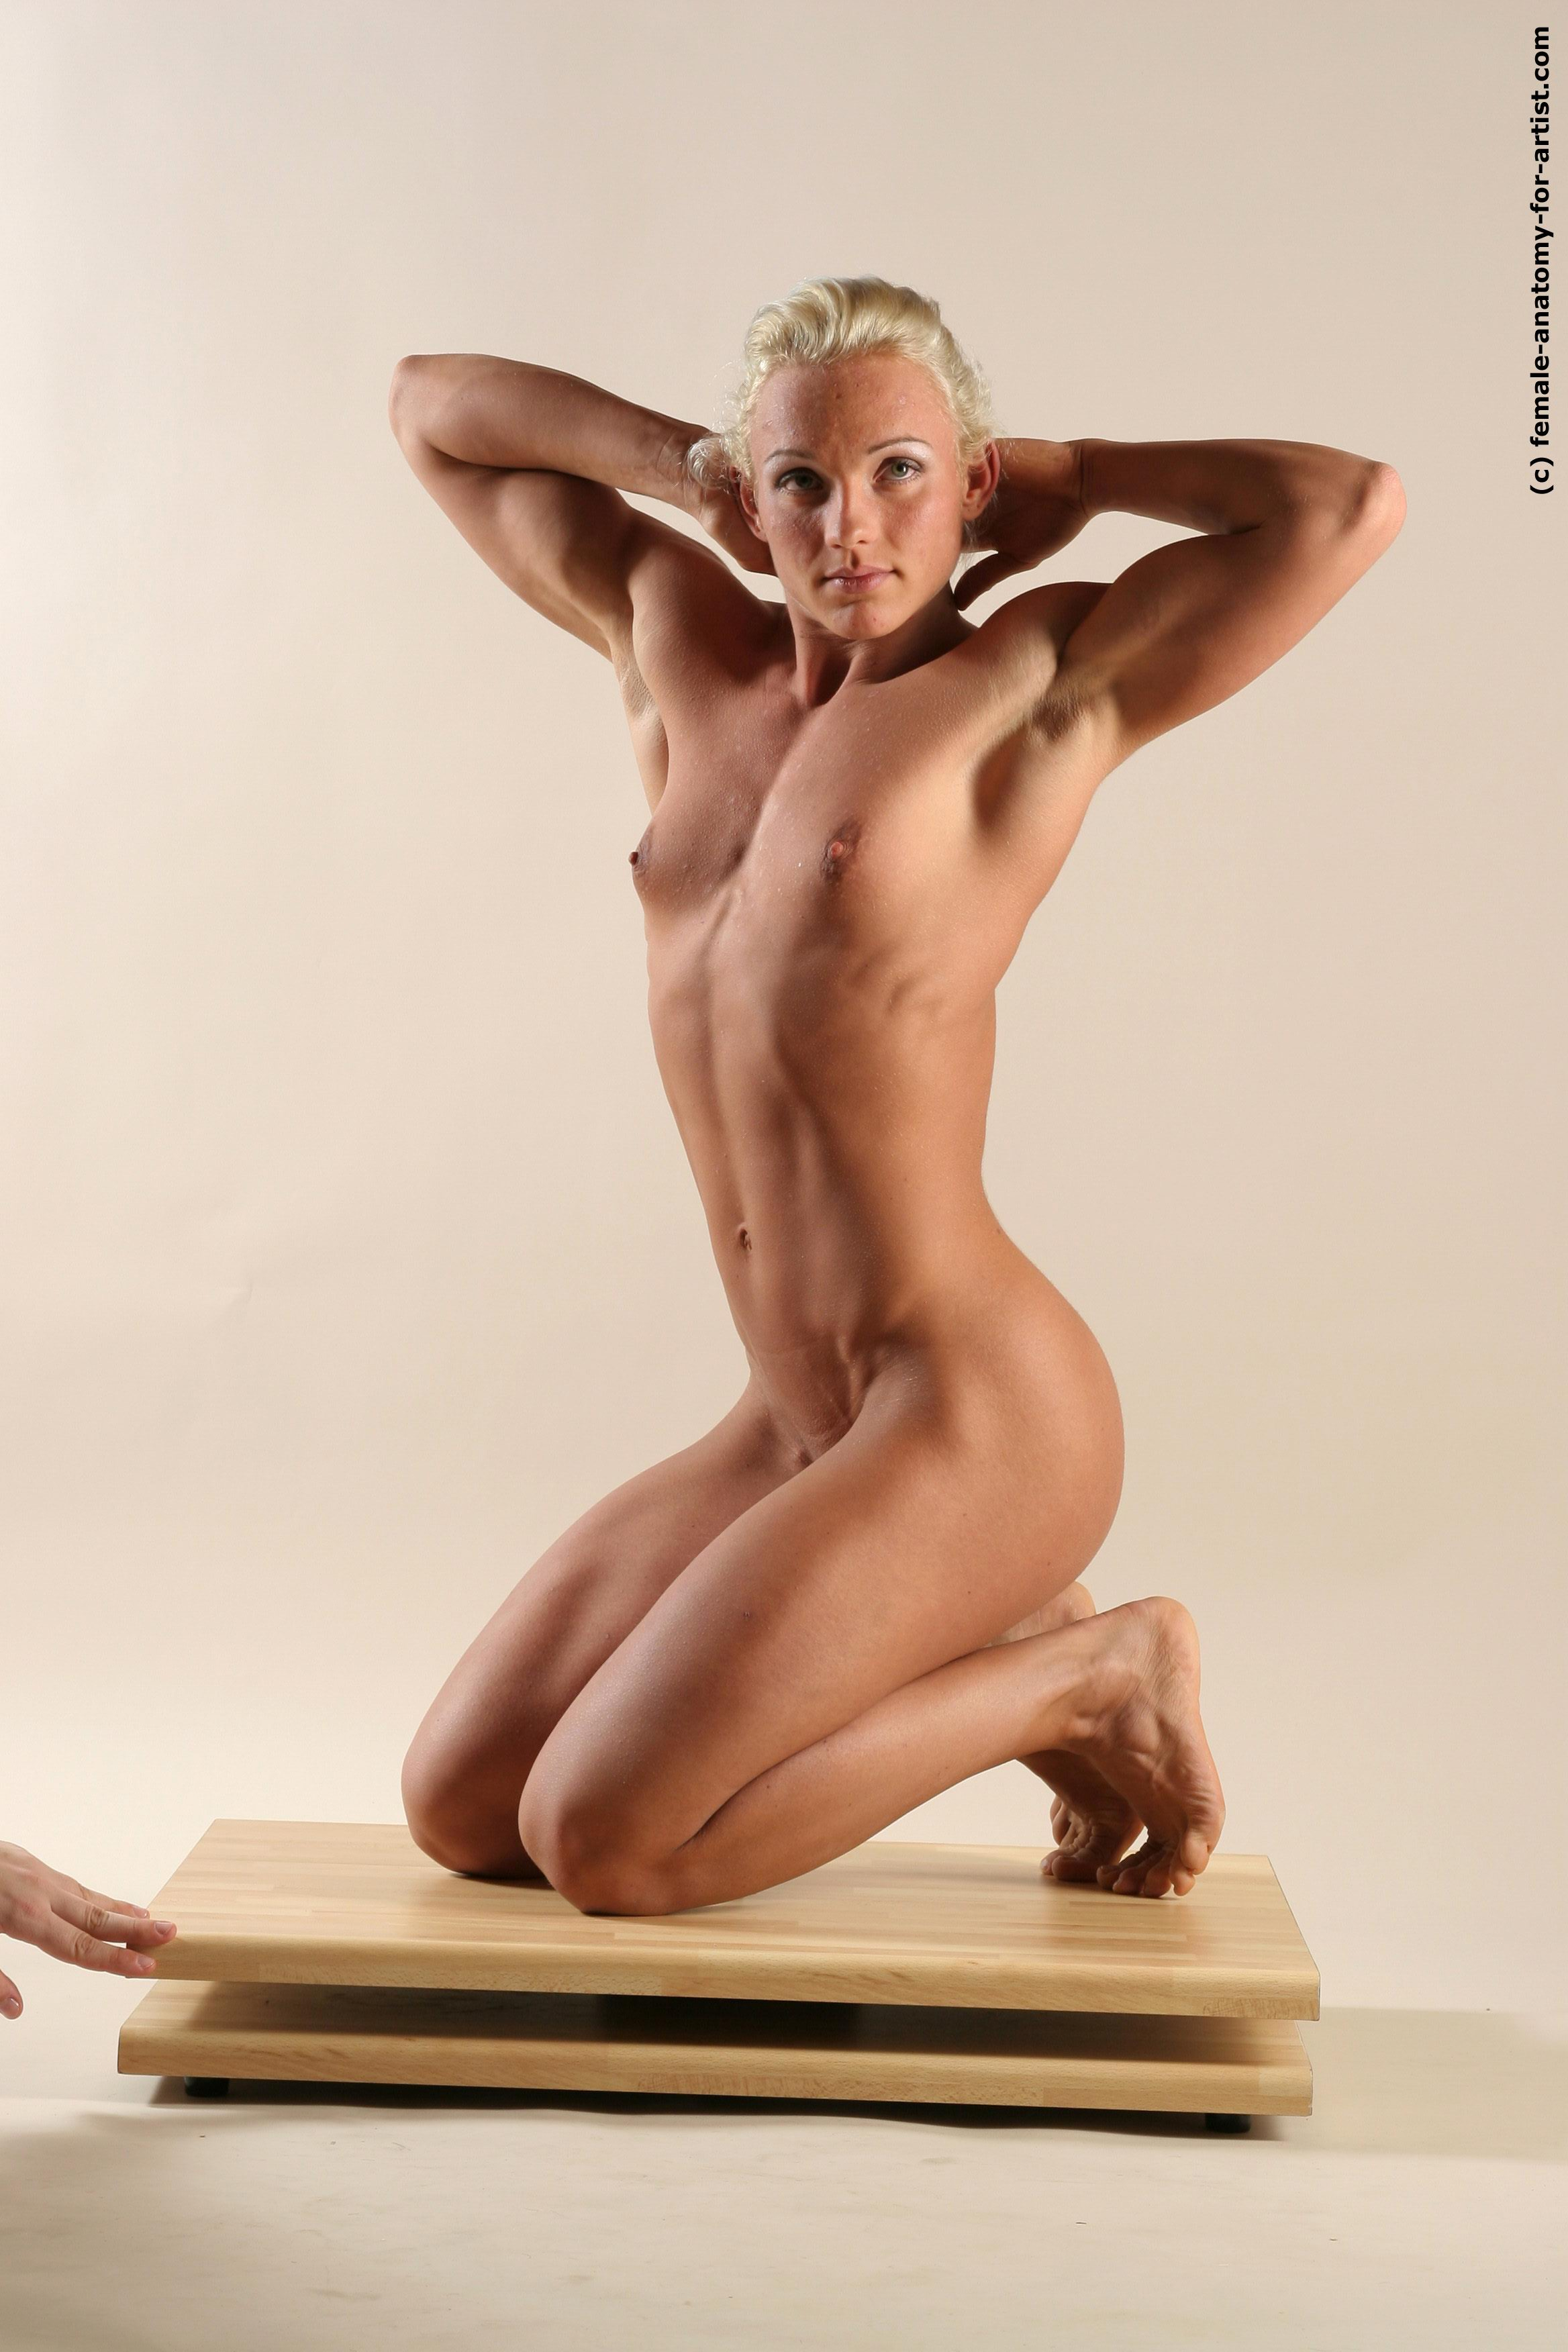 Seems magnificent female anatomy for artists porno pics